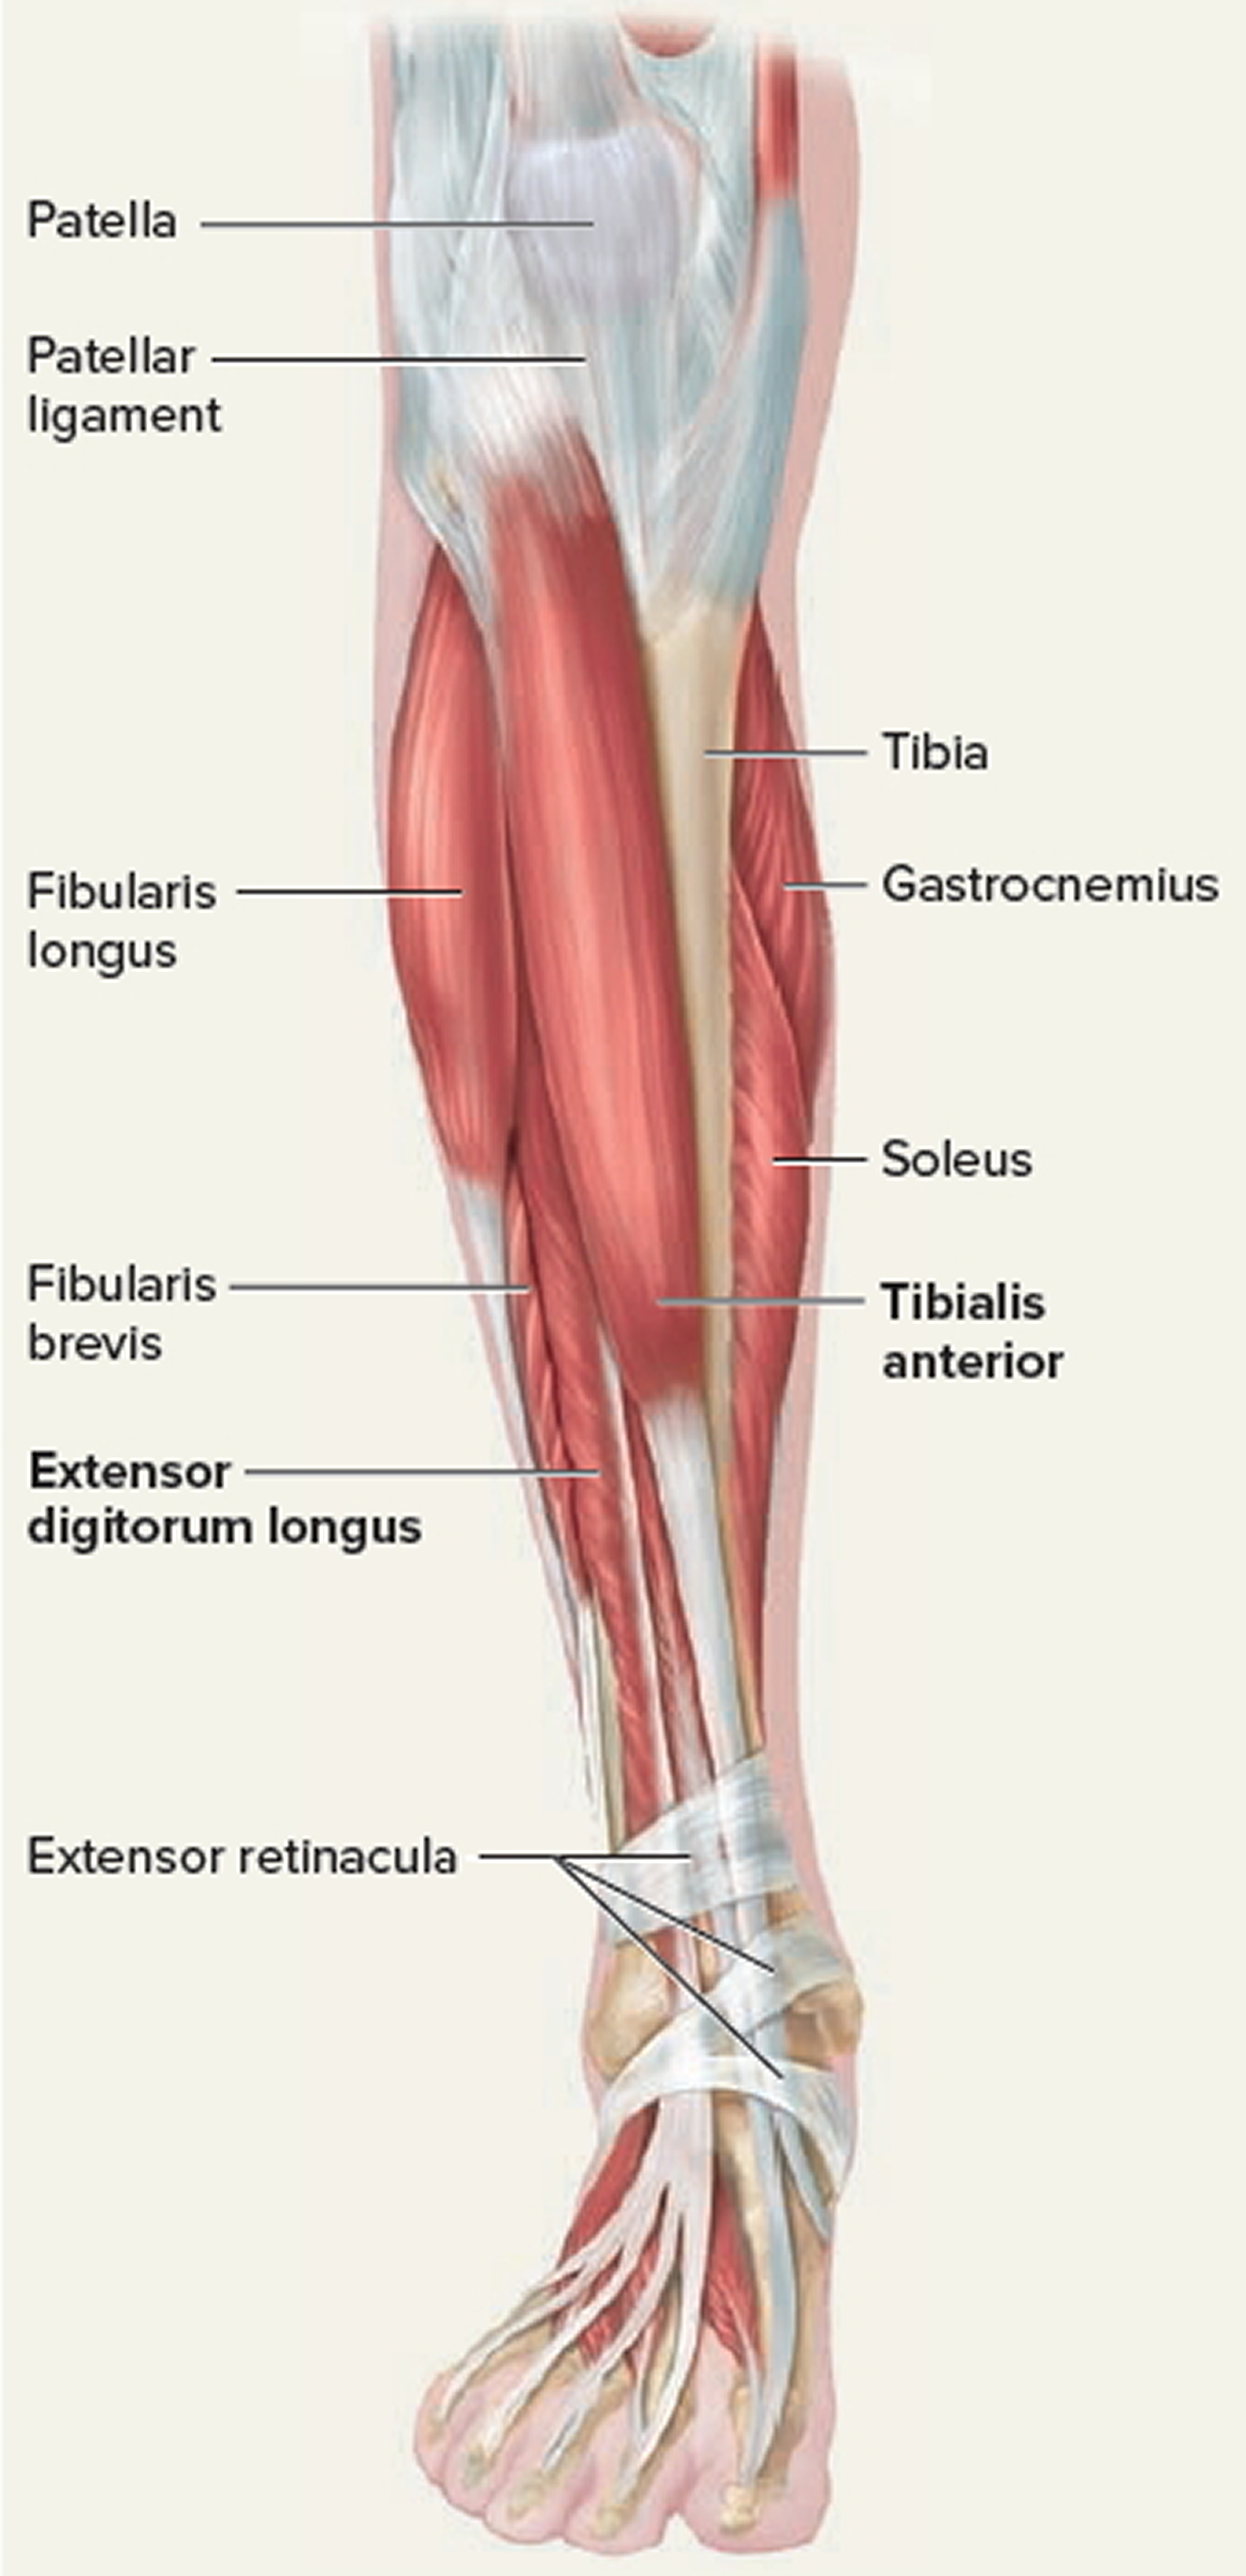 Tendon - Function, Arm, Hand Tendons - Leg and Achilles Tendons